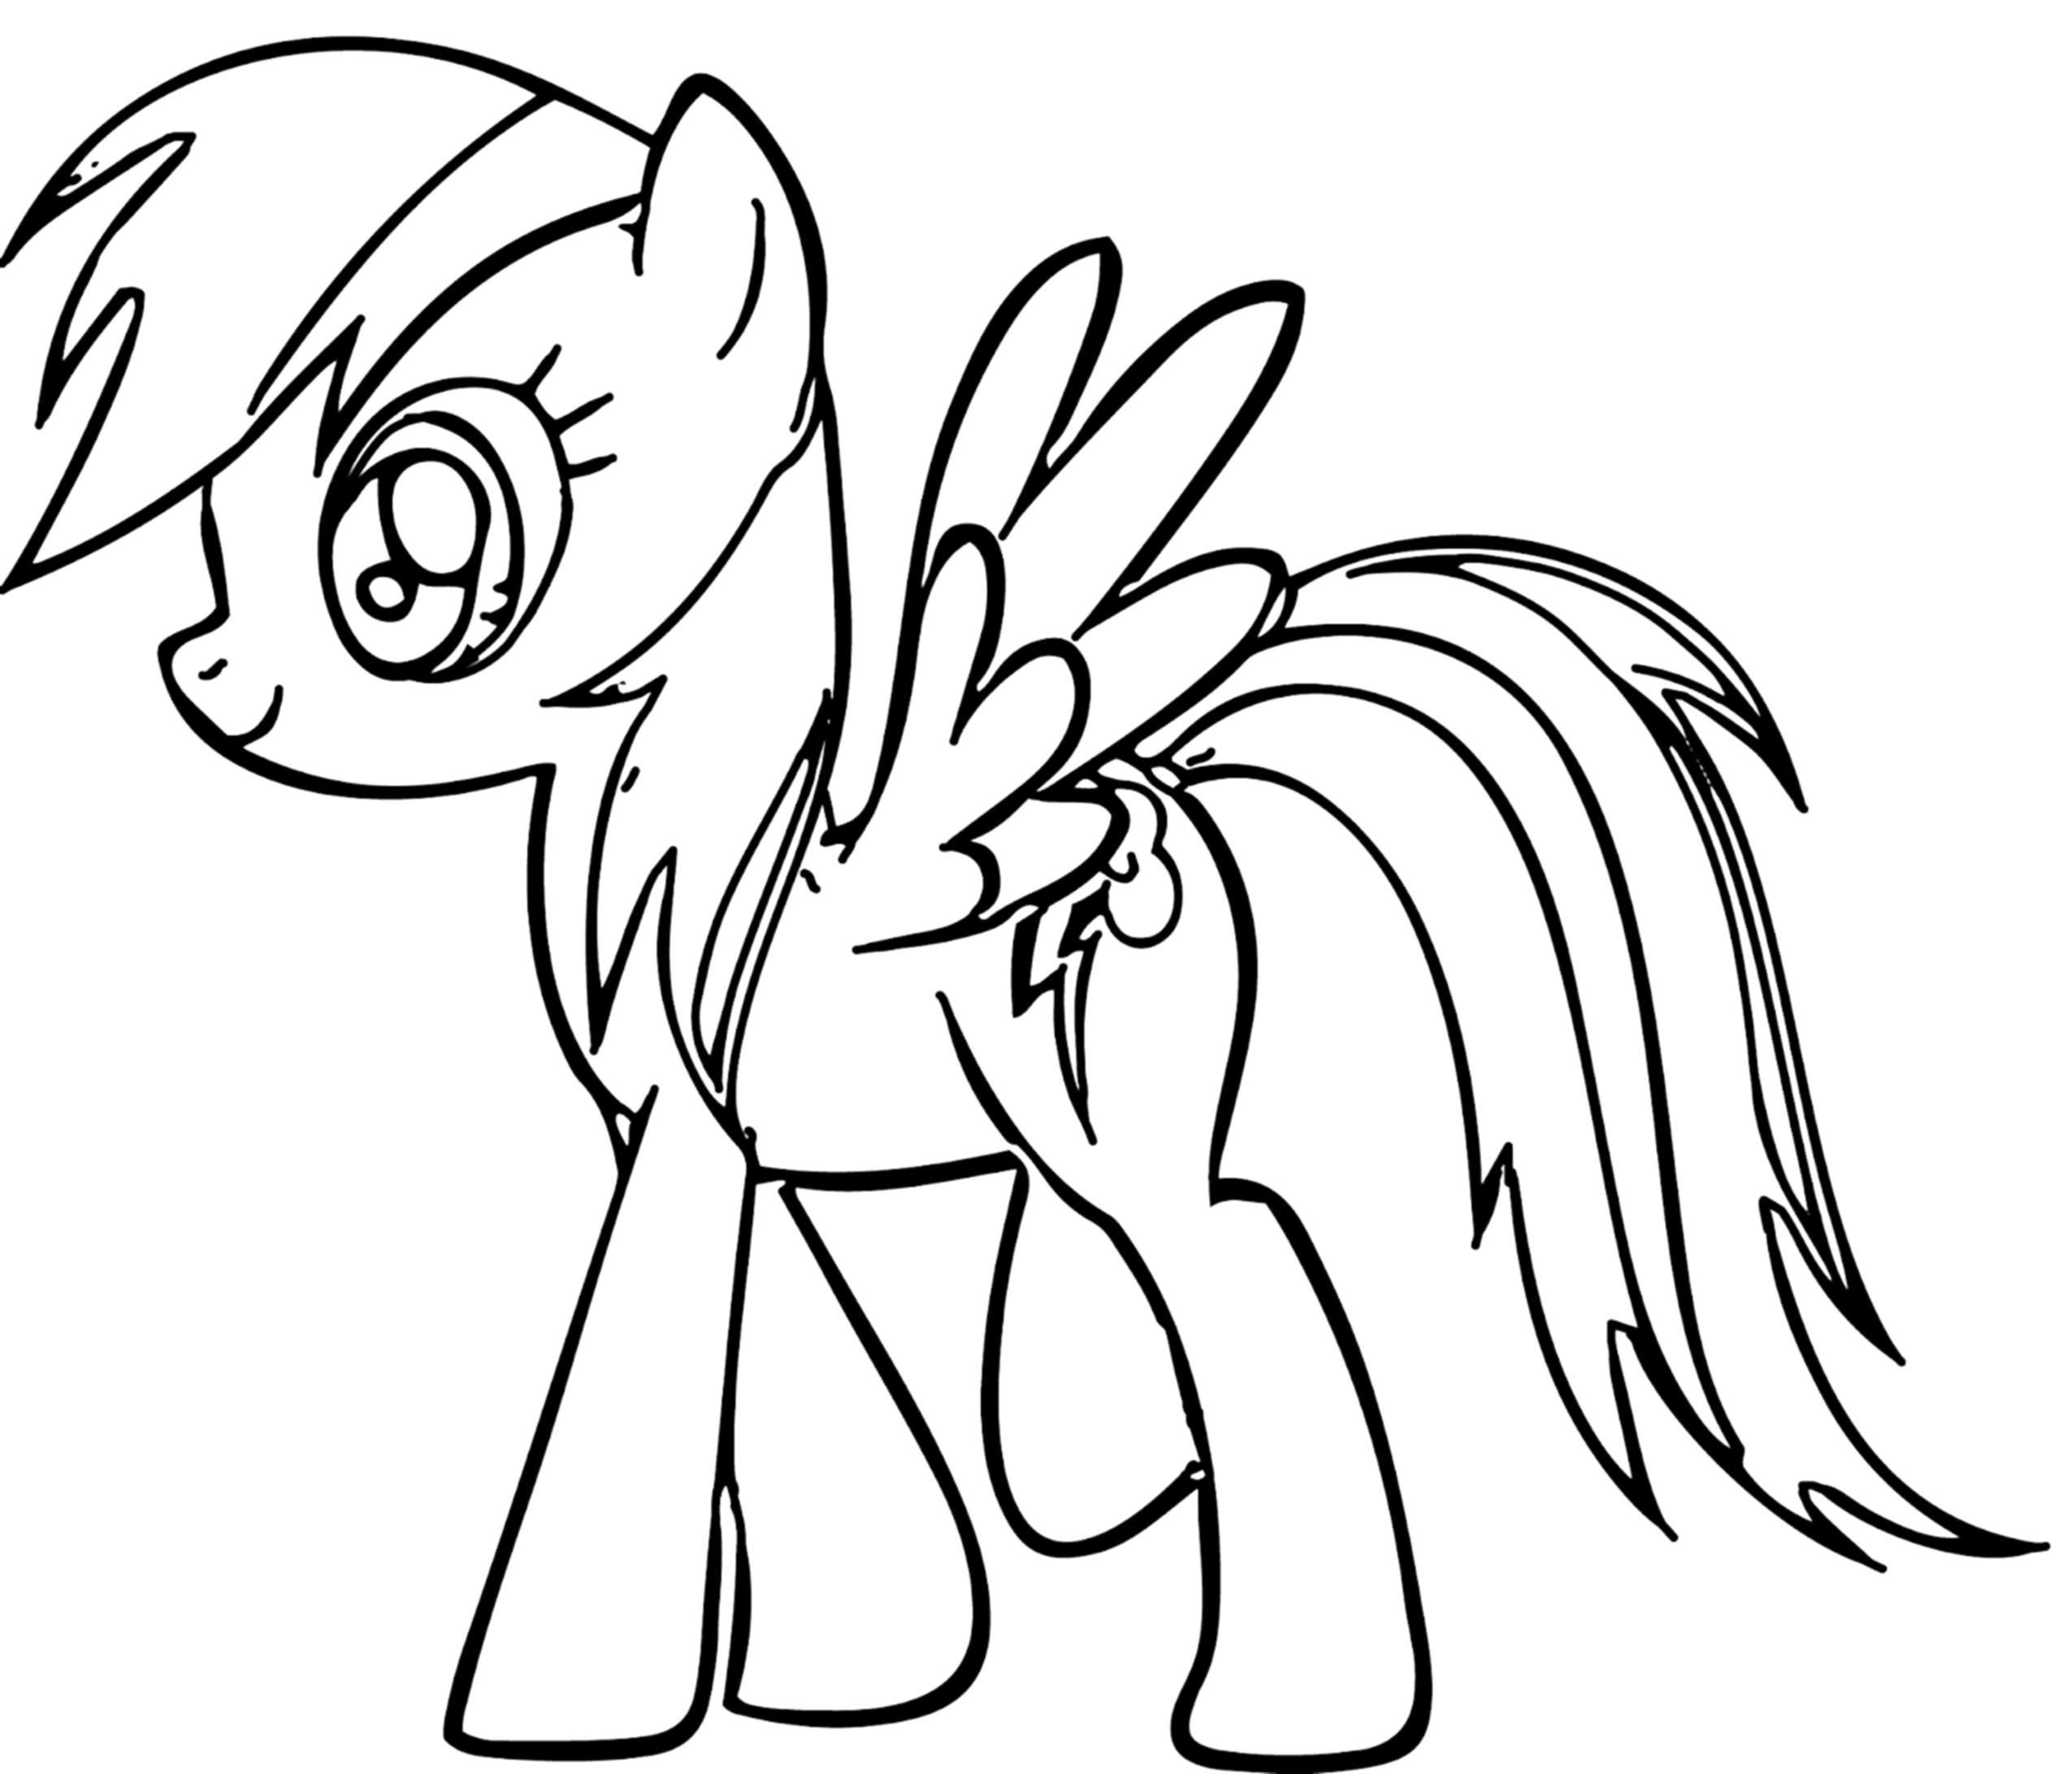 Kids Coloring Sheet  Rainbow Dash Coloring Pages Best Coloring Pages For Kids